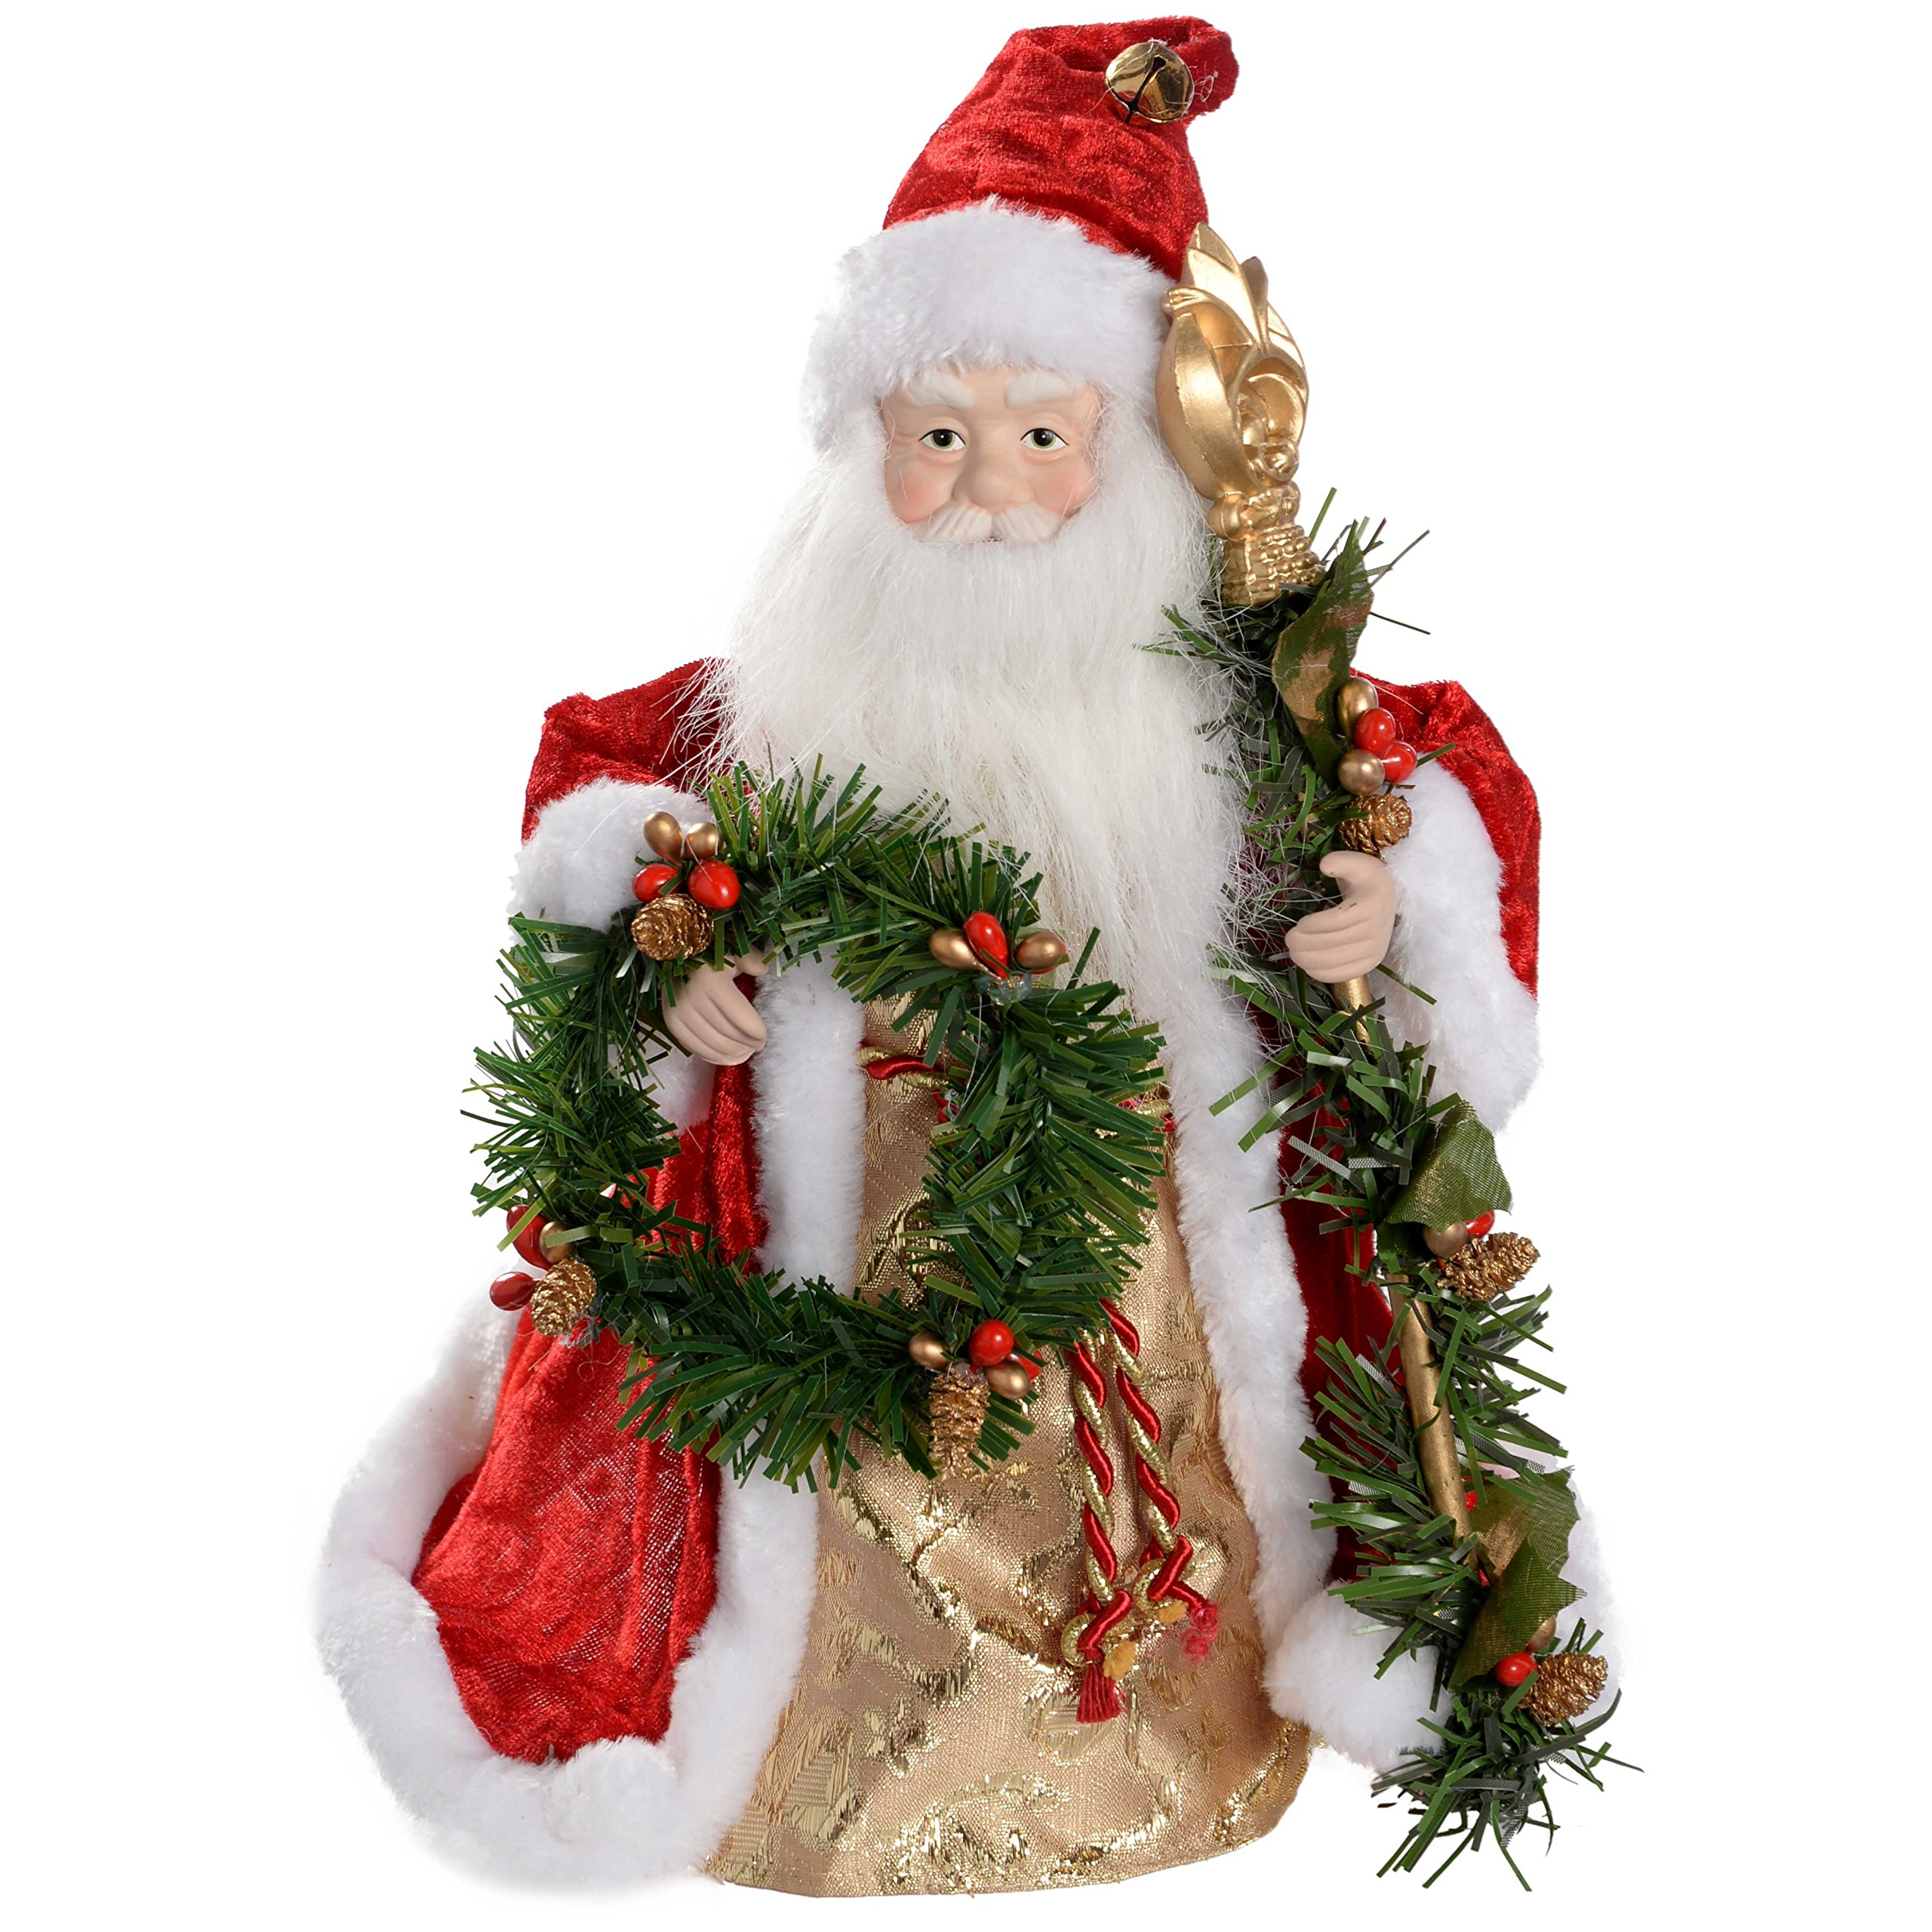 WeRChristmas 30 cm Santa Decoration Christmas Tree Top Topper, Red/ Gold